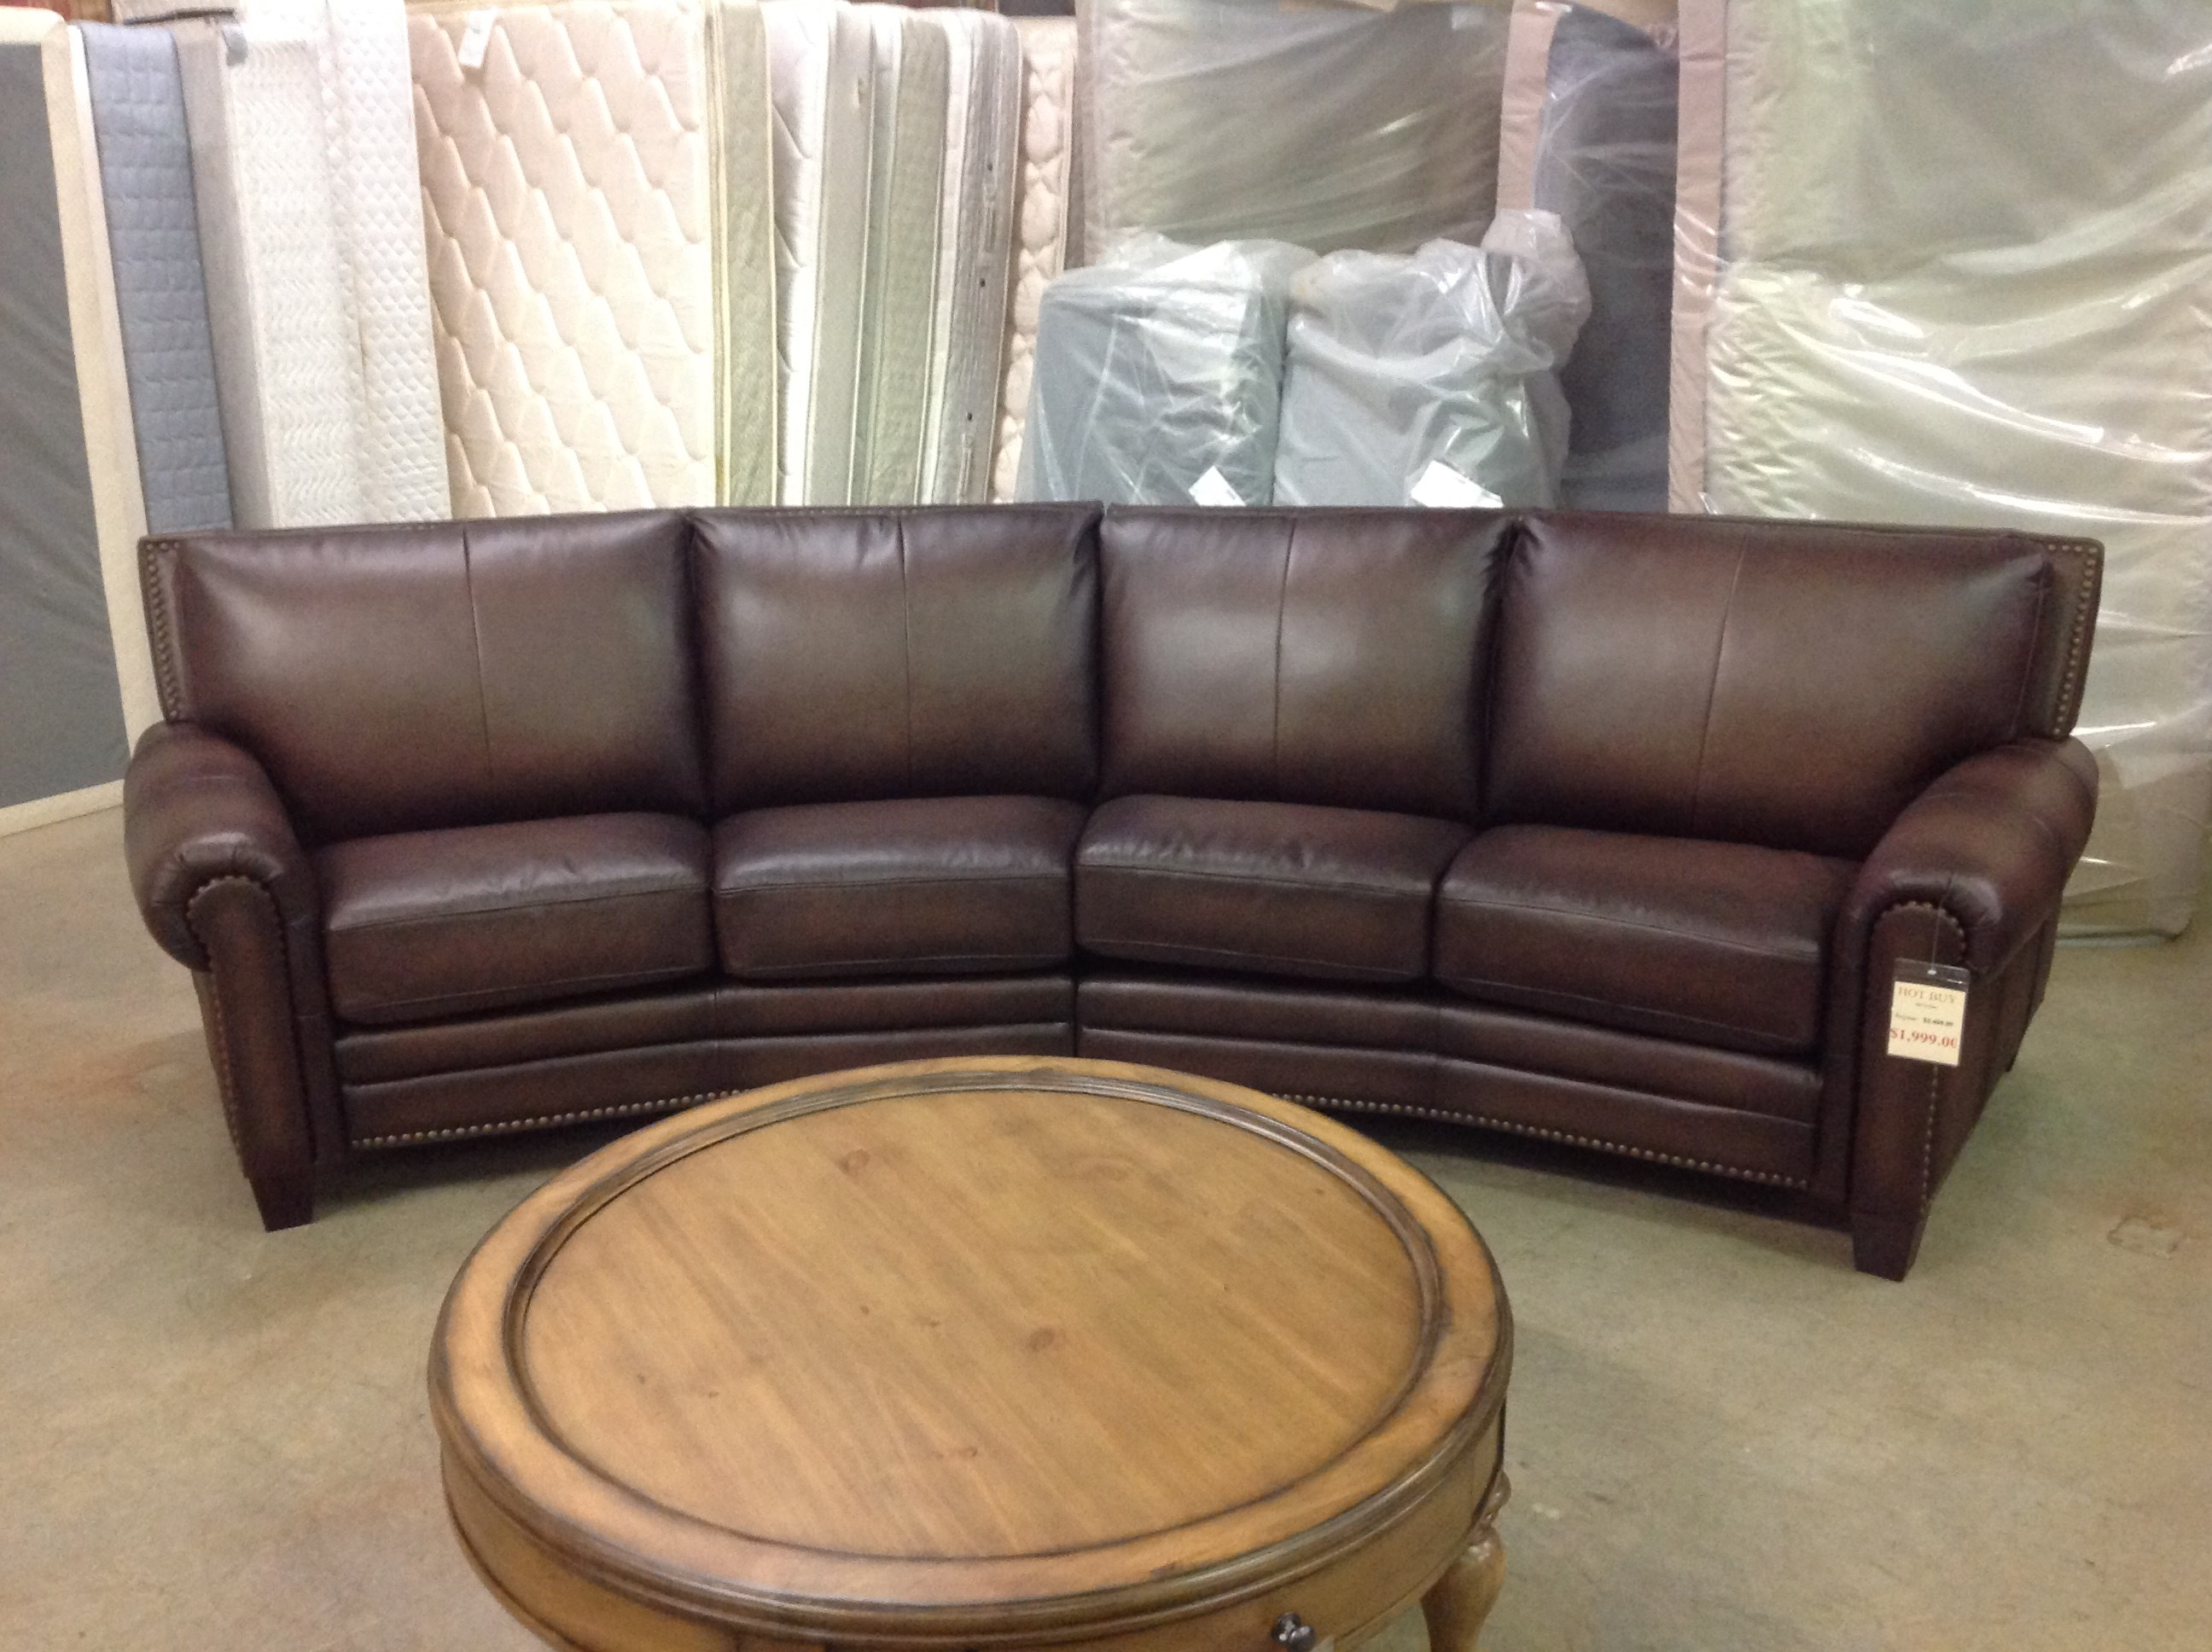 Clearance Furniture Stores